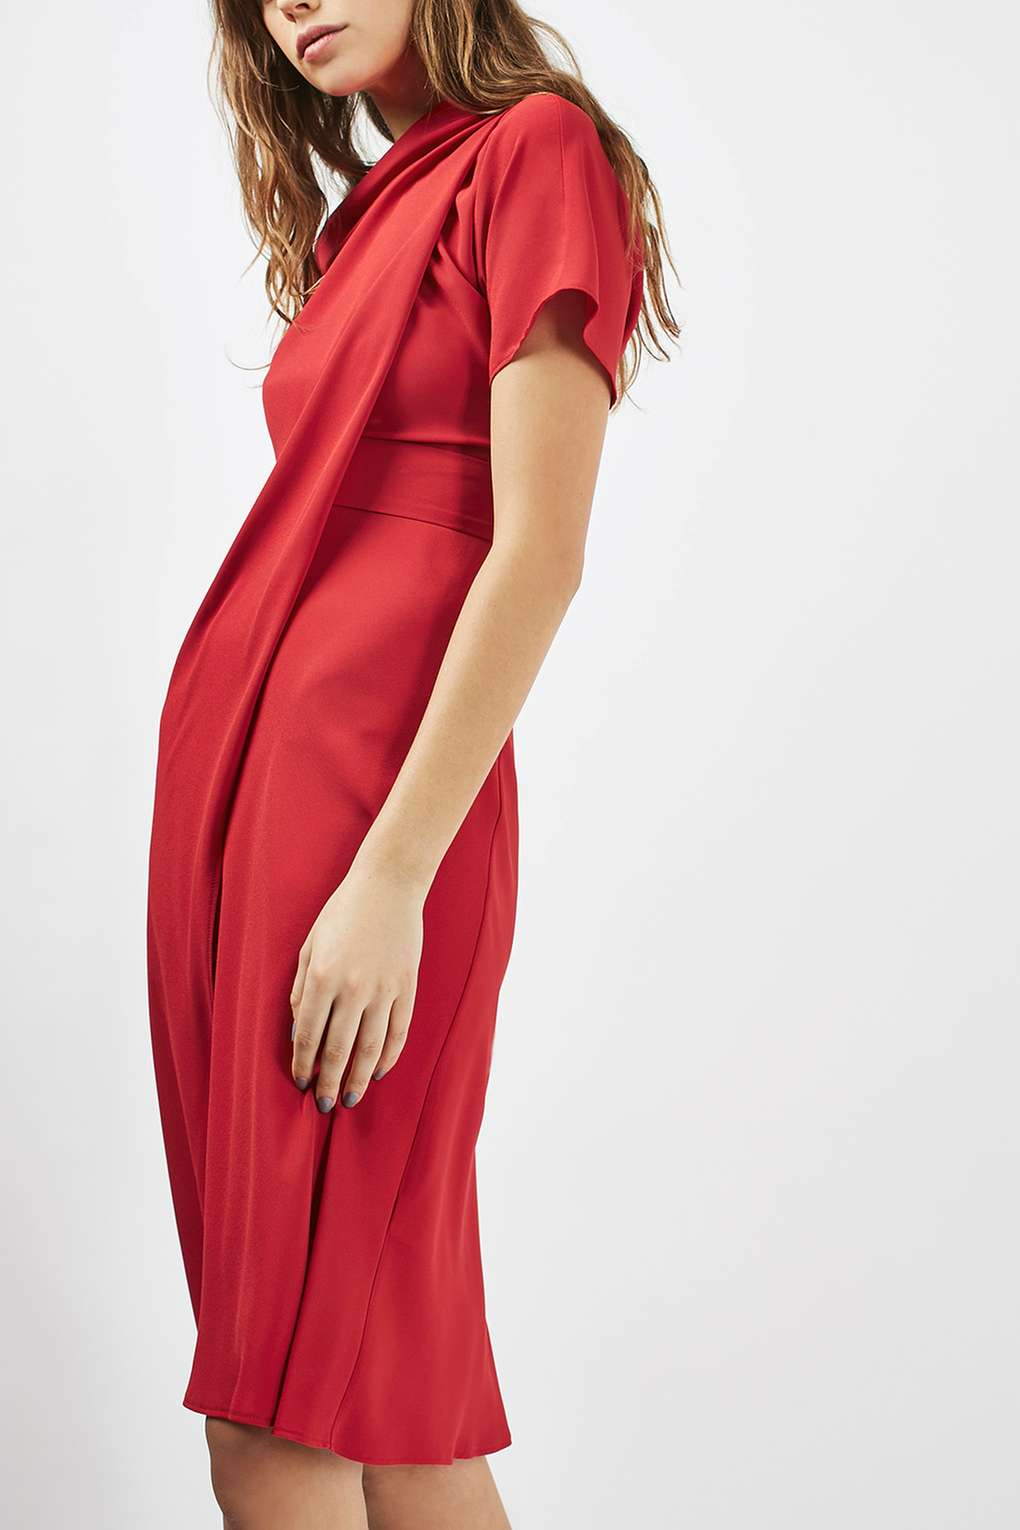 Draped midi dress, €80 at Topshop